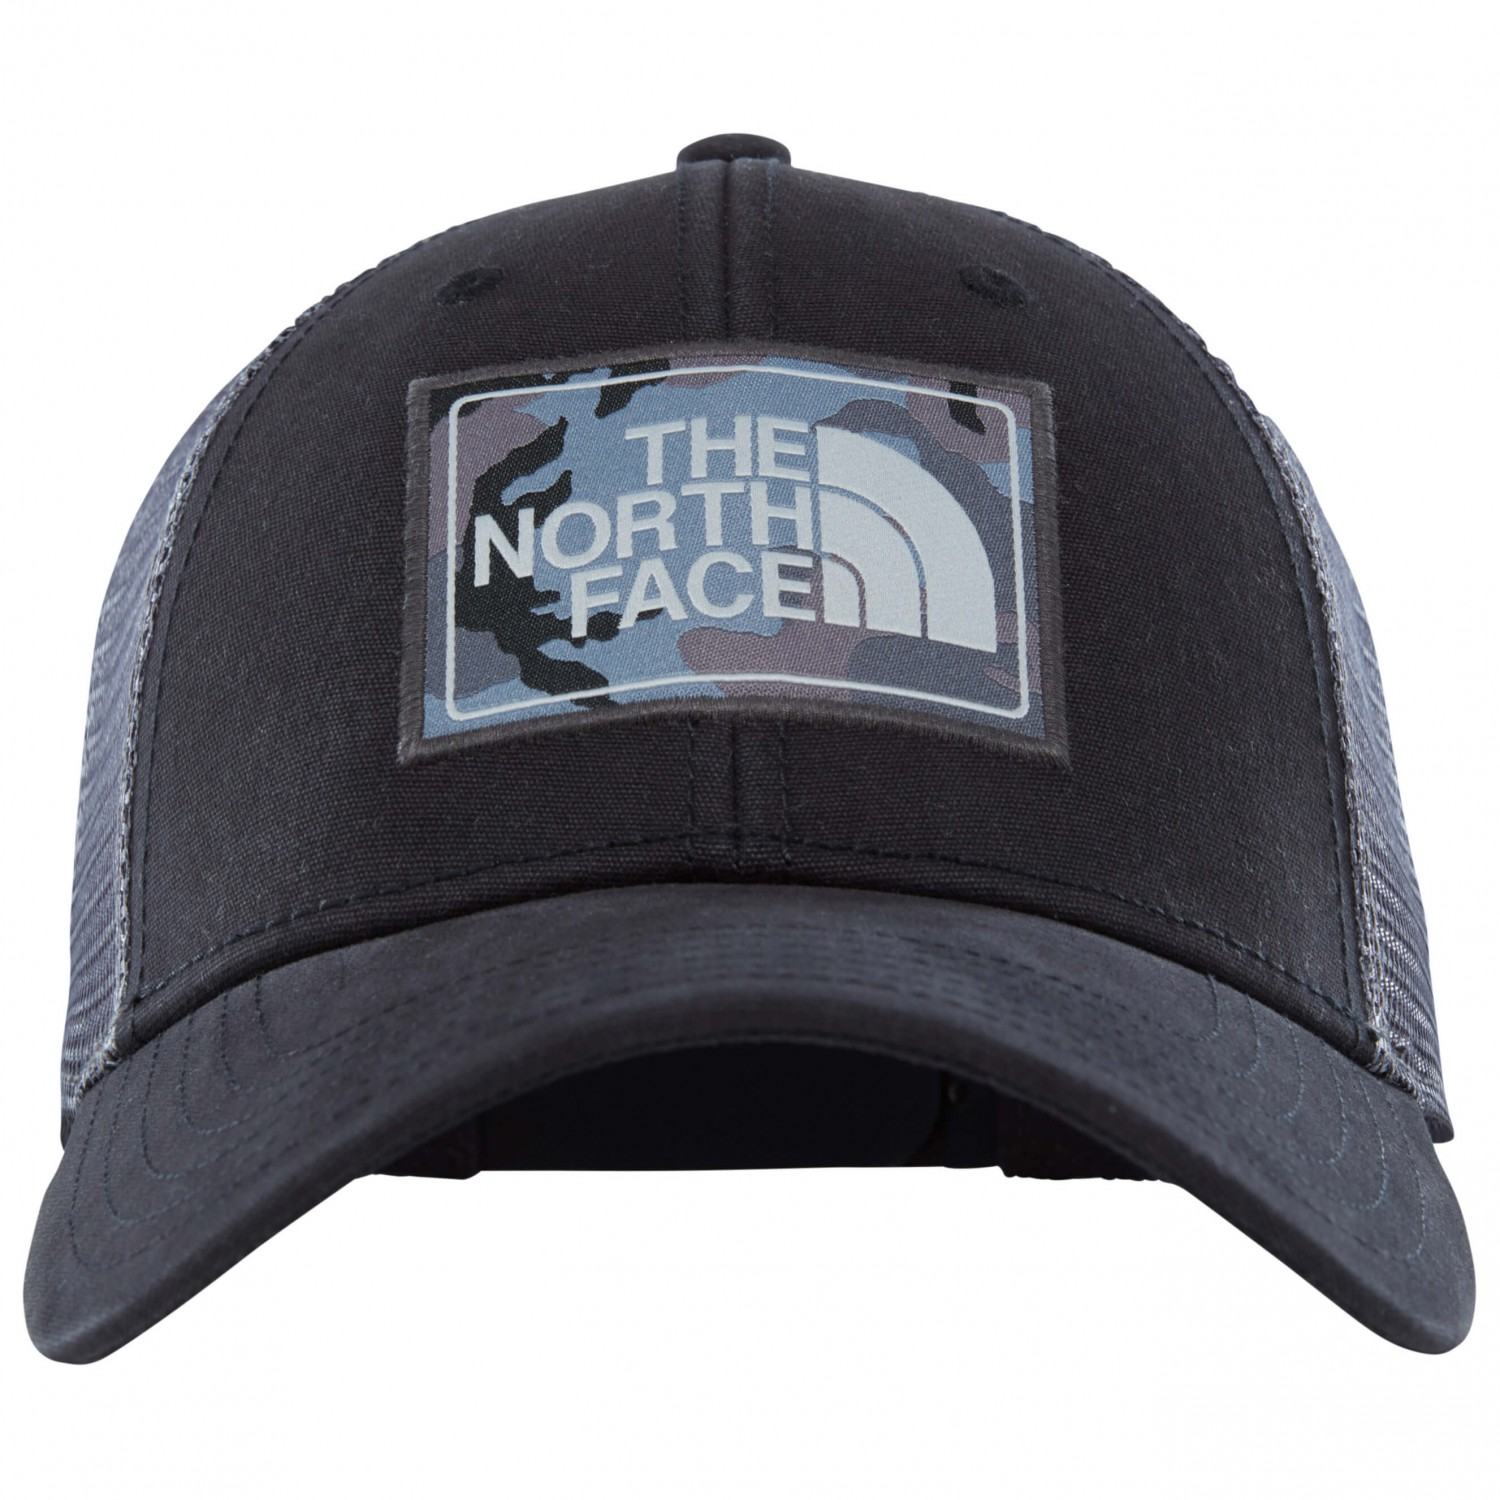 The North Face - Mudder Trucker Hat - Cap ... c533231cc83c